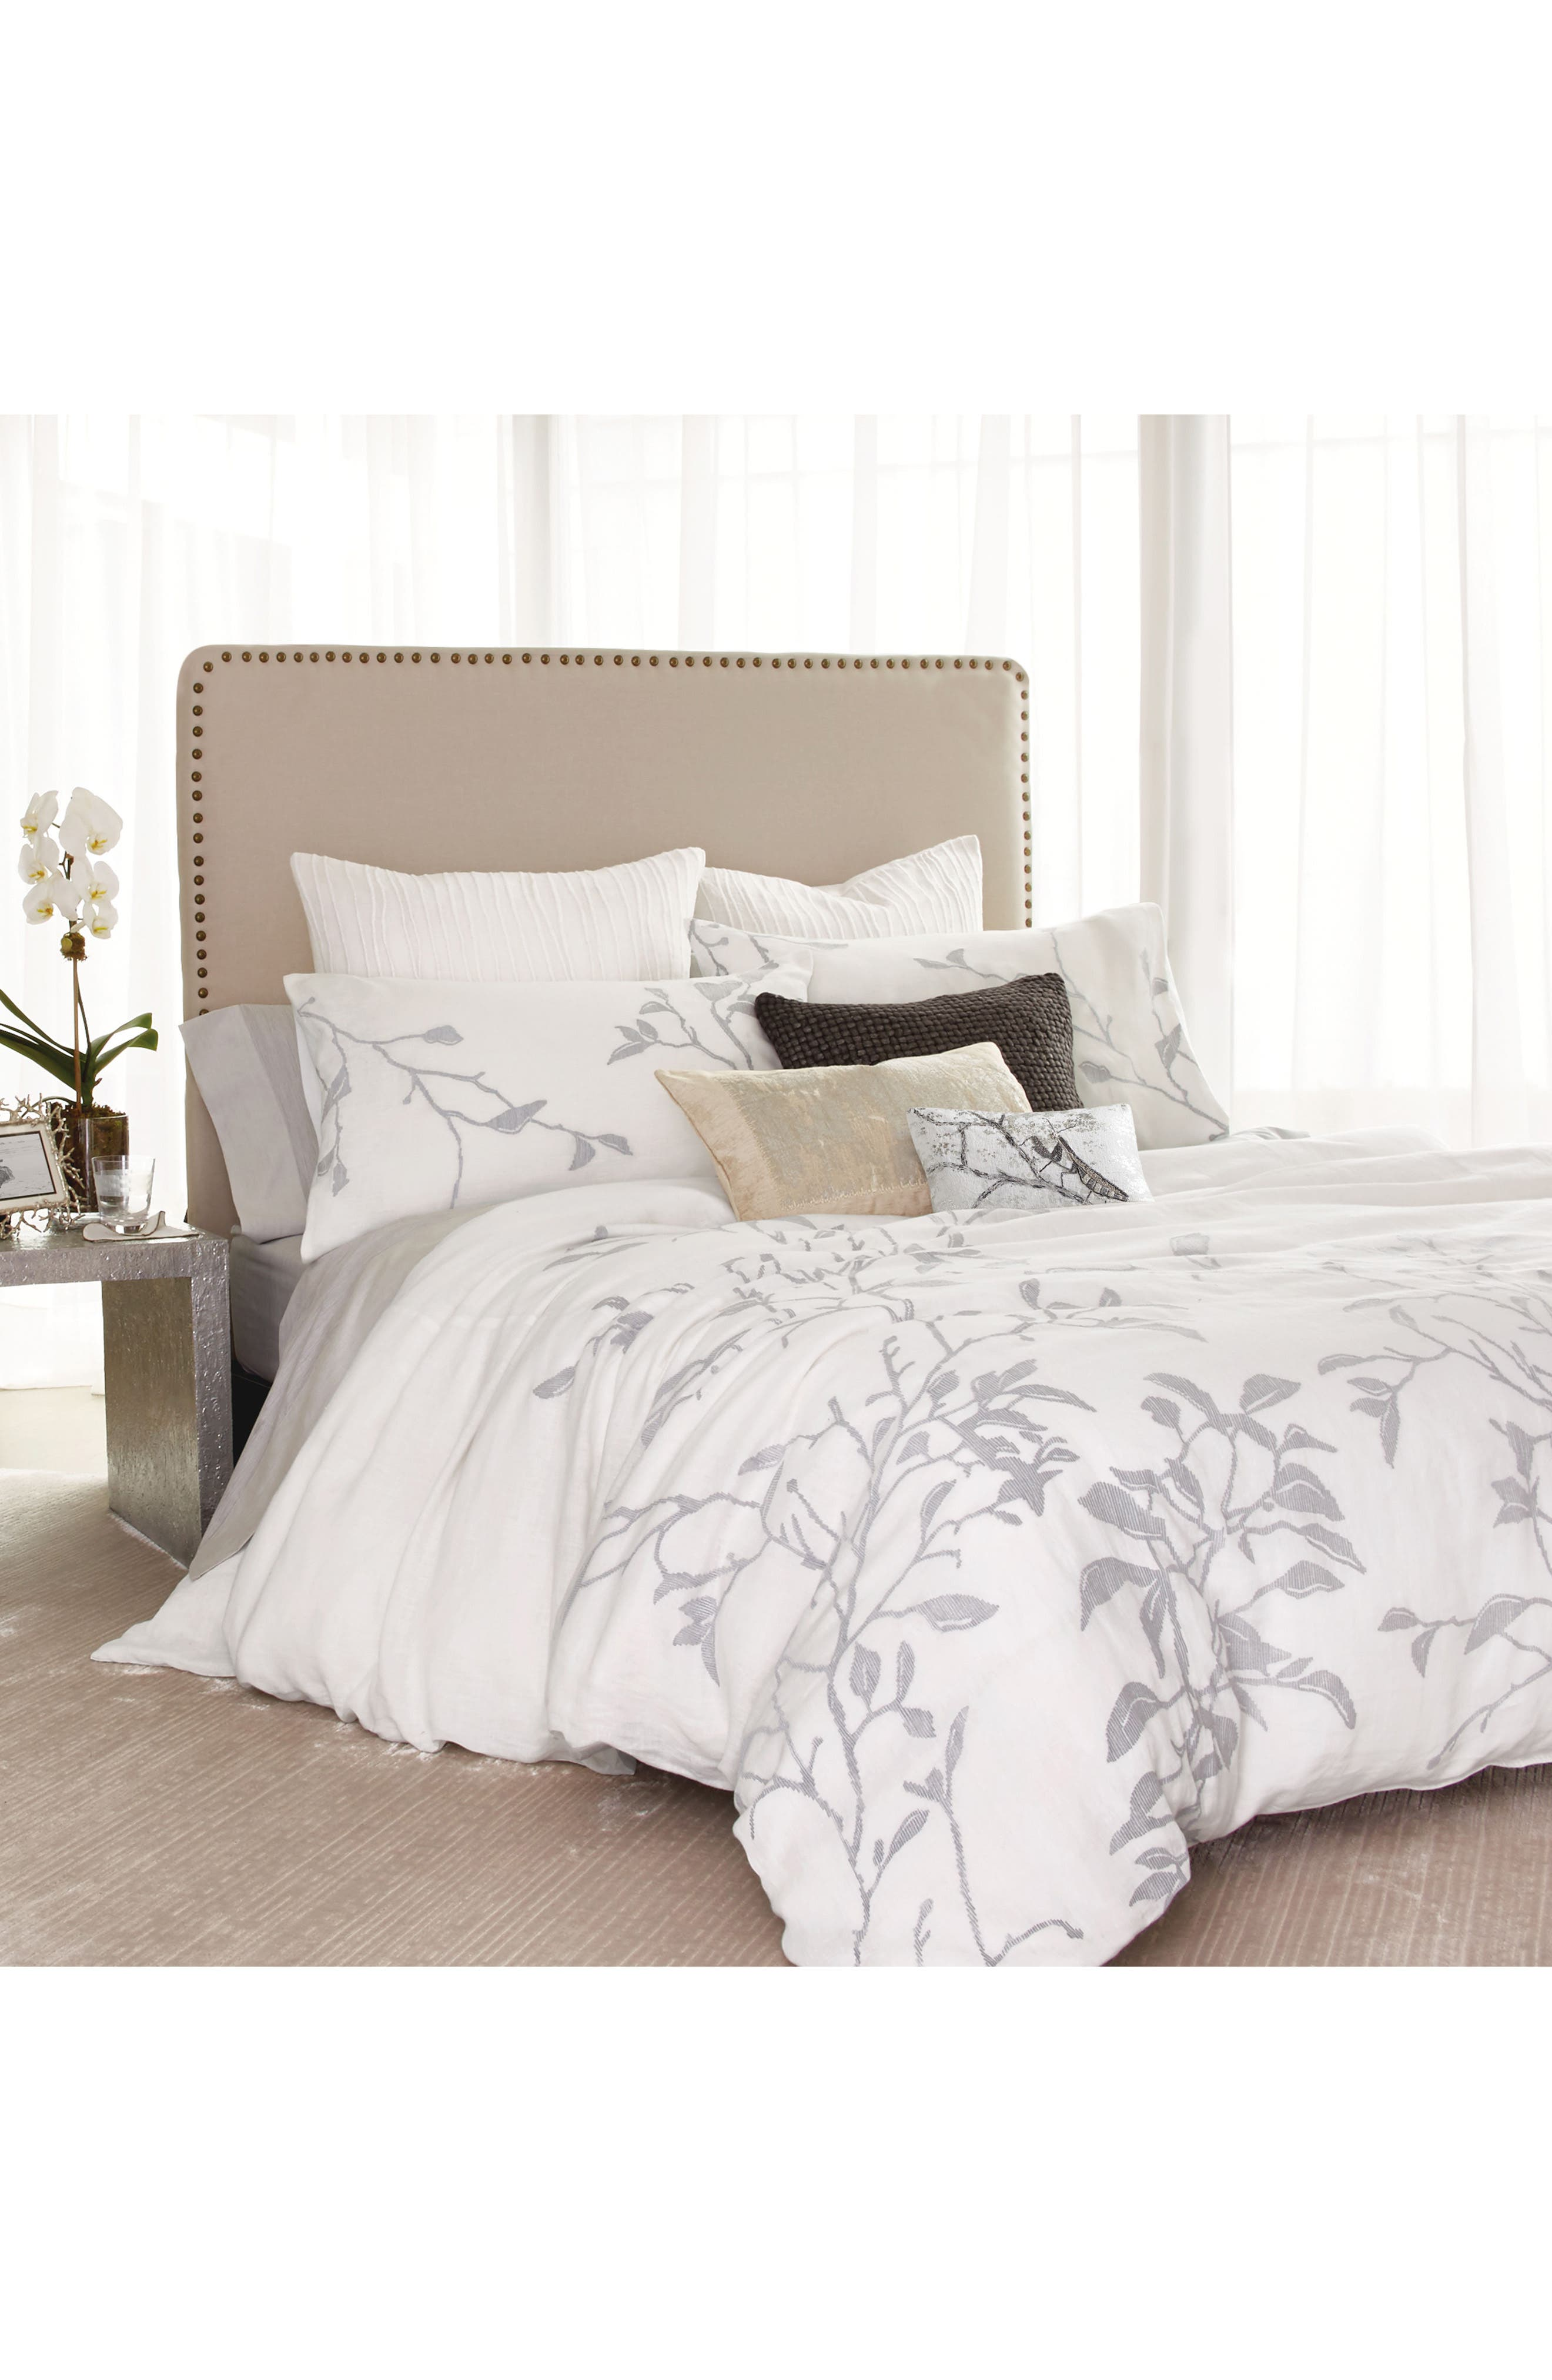 Michael Aram Branch Duvet Cover Size King  White